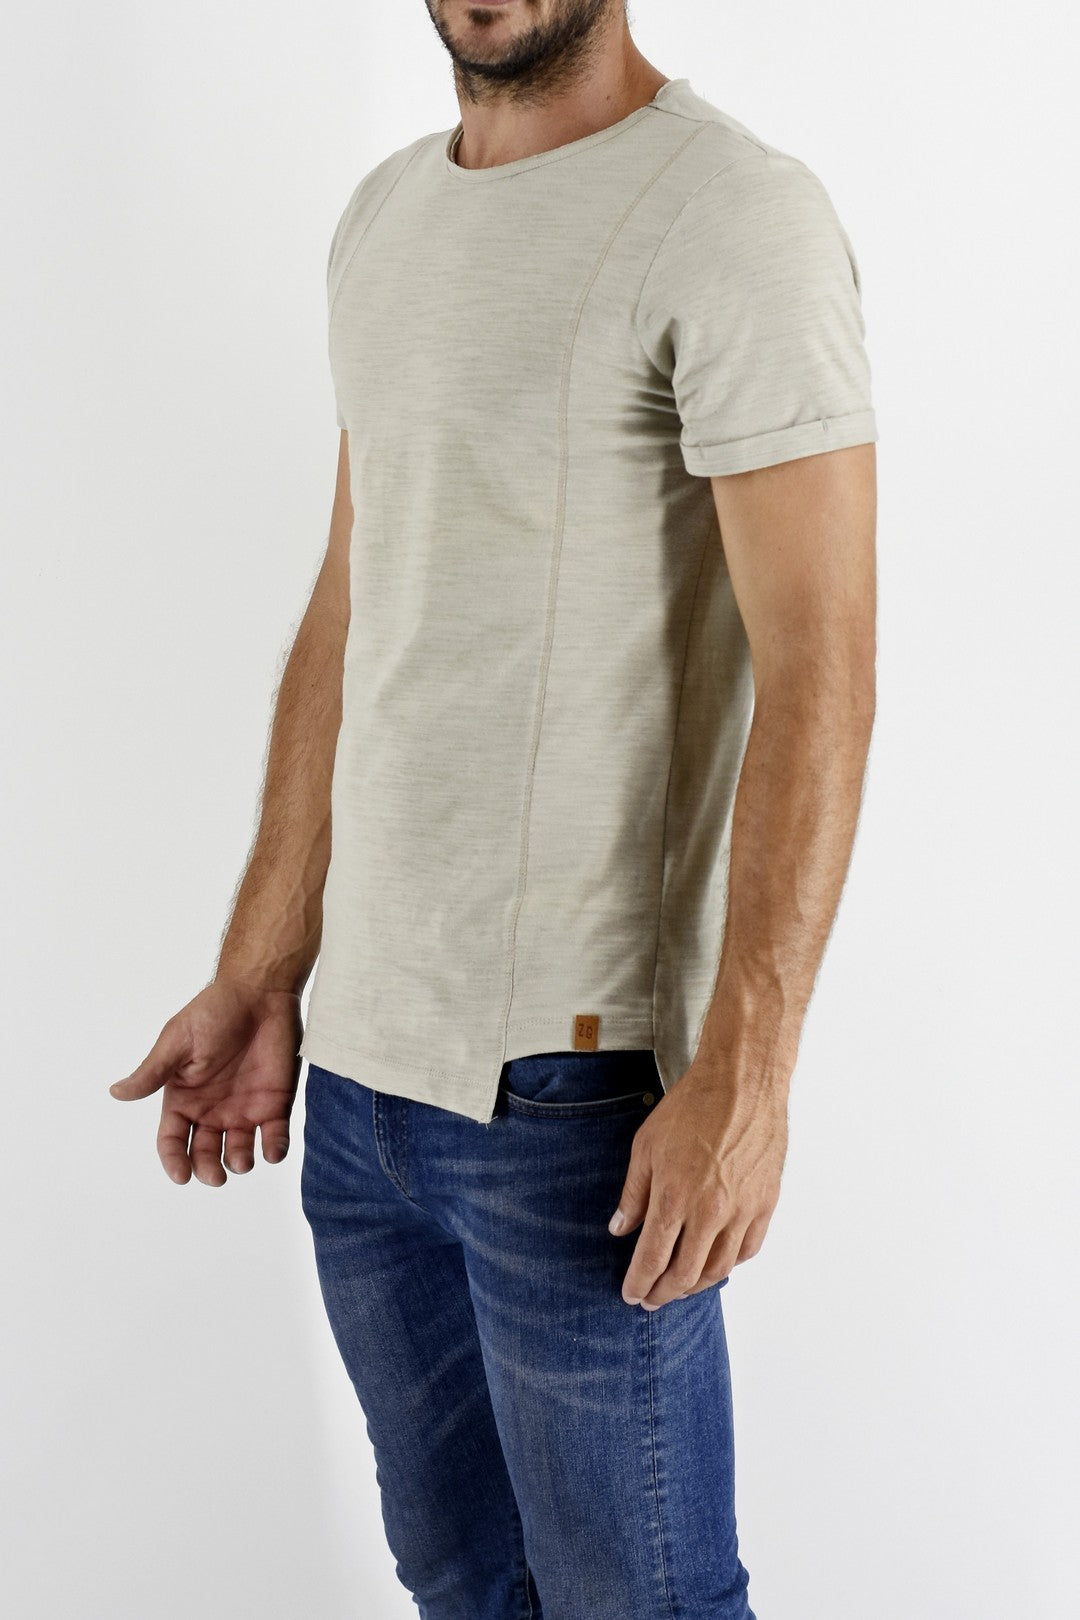 STONE STEP HEM ZEITGEIST T SHIRT ZG5168 side view